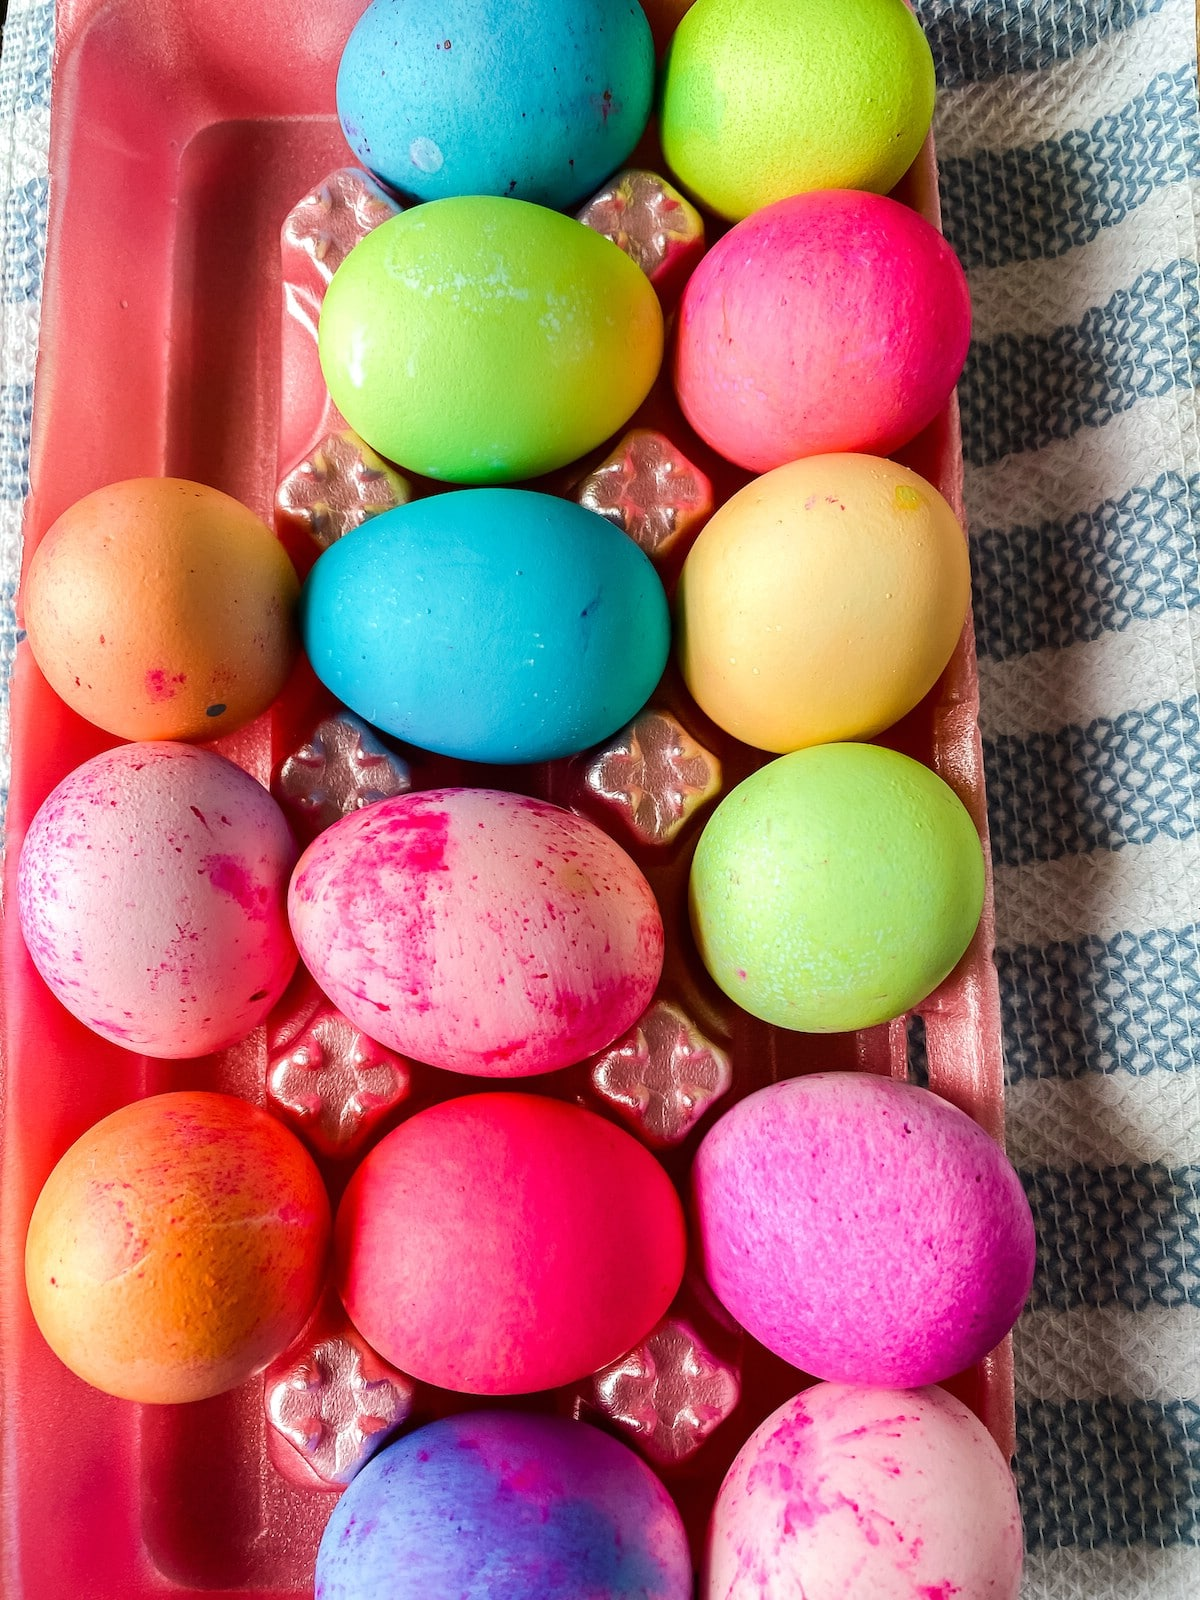 Pink egg carton filled with dyed eggs